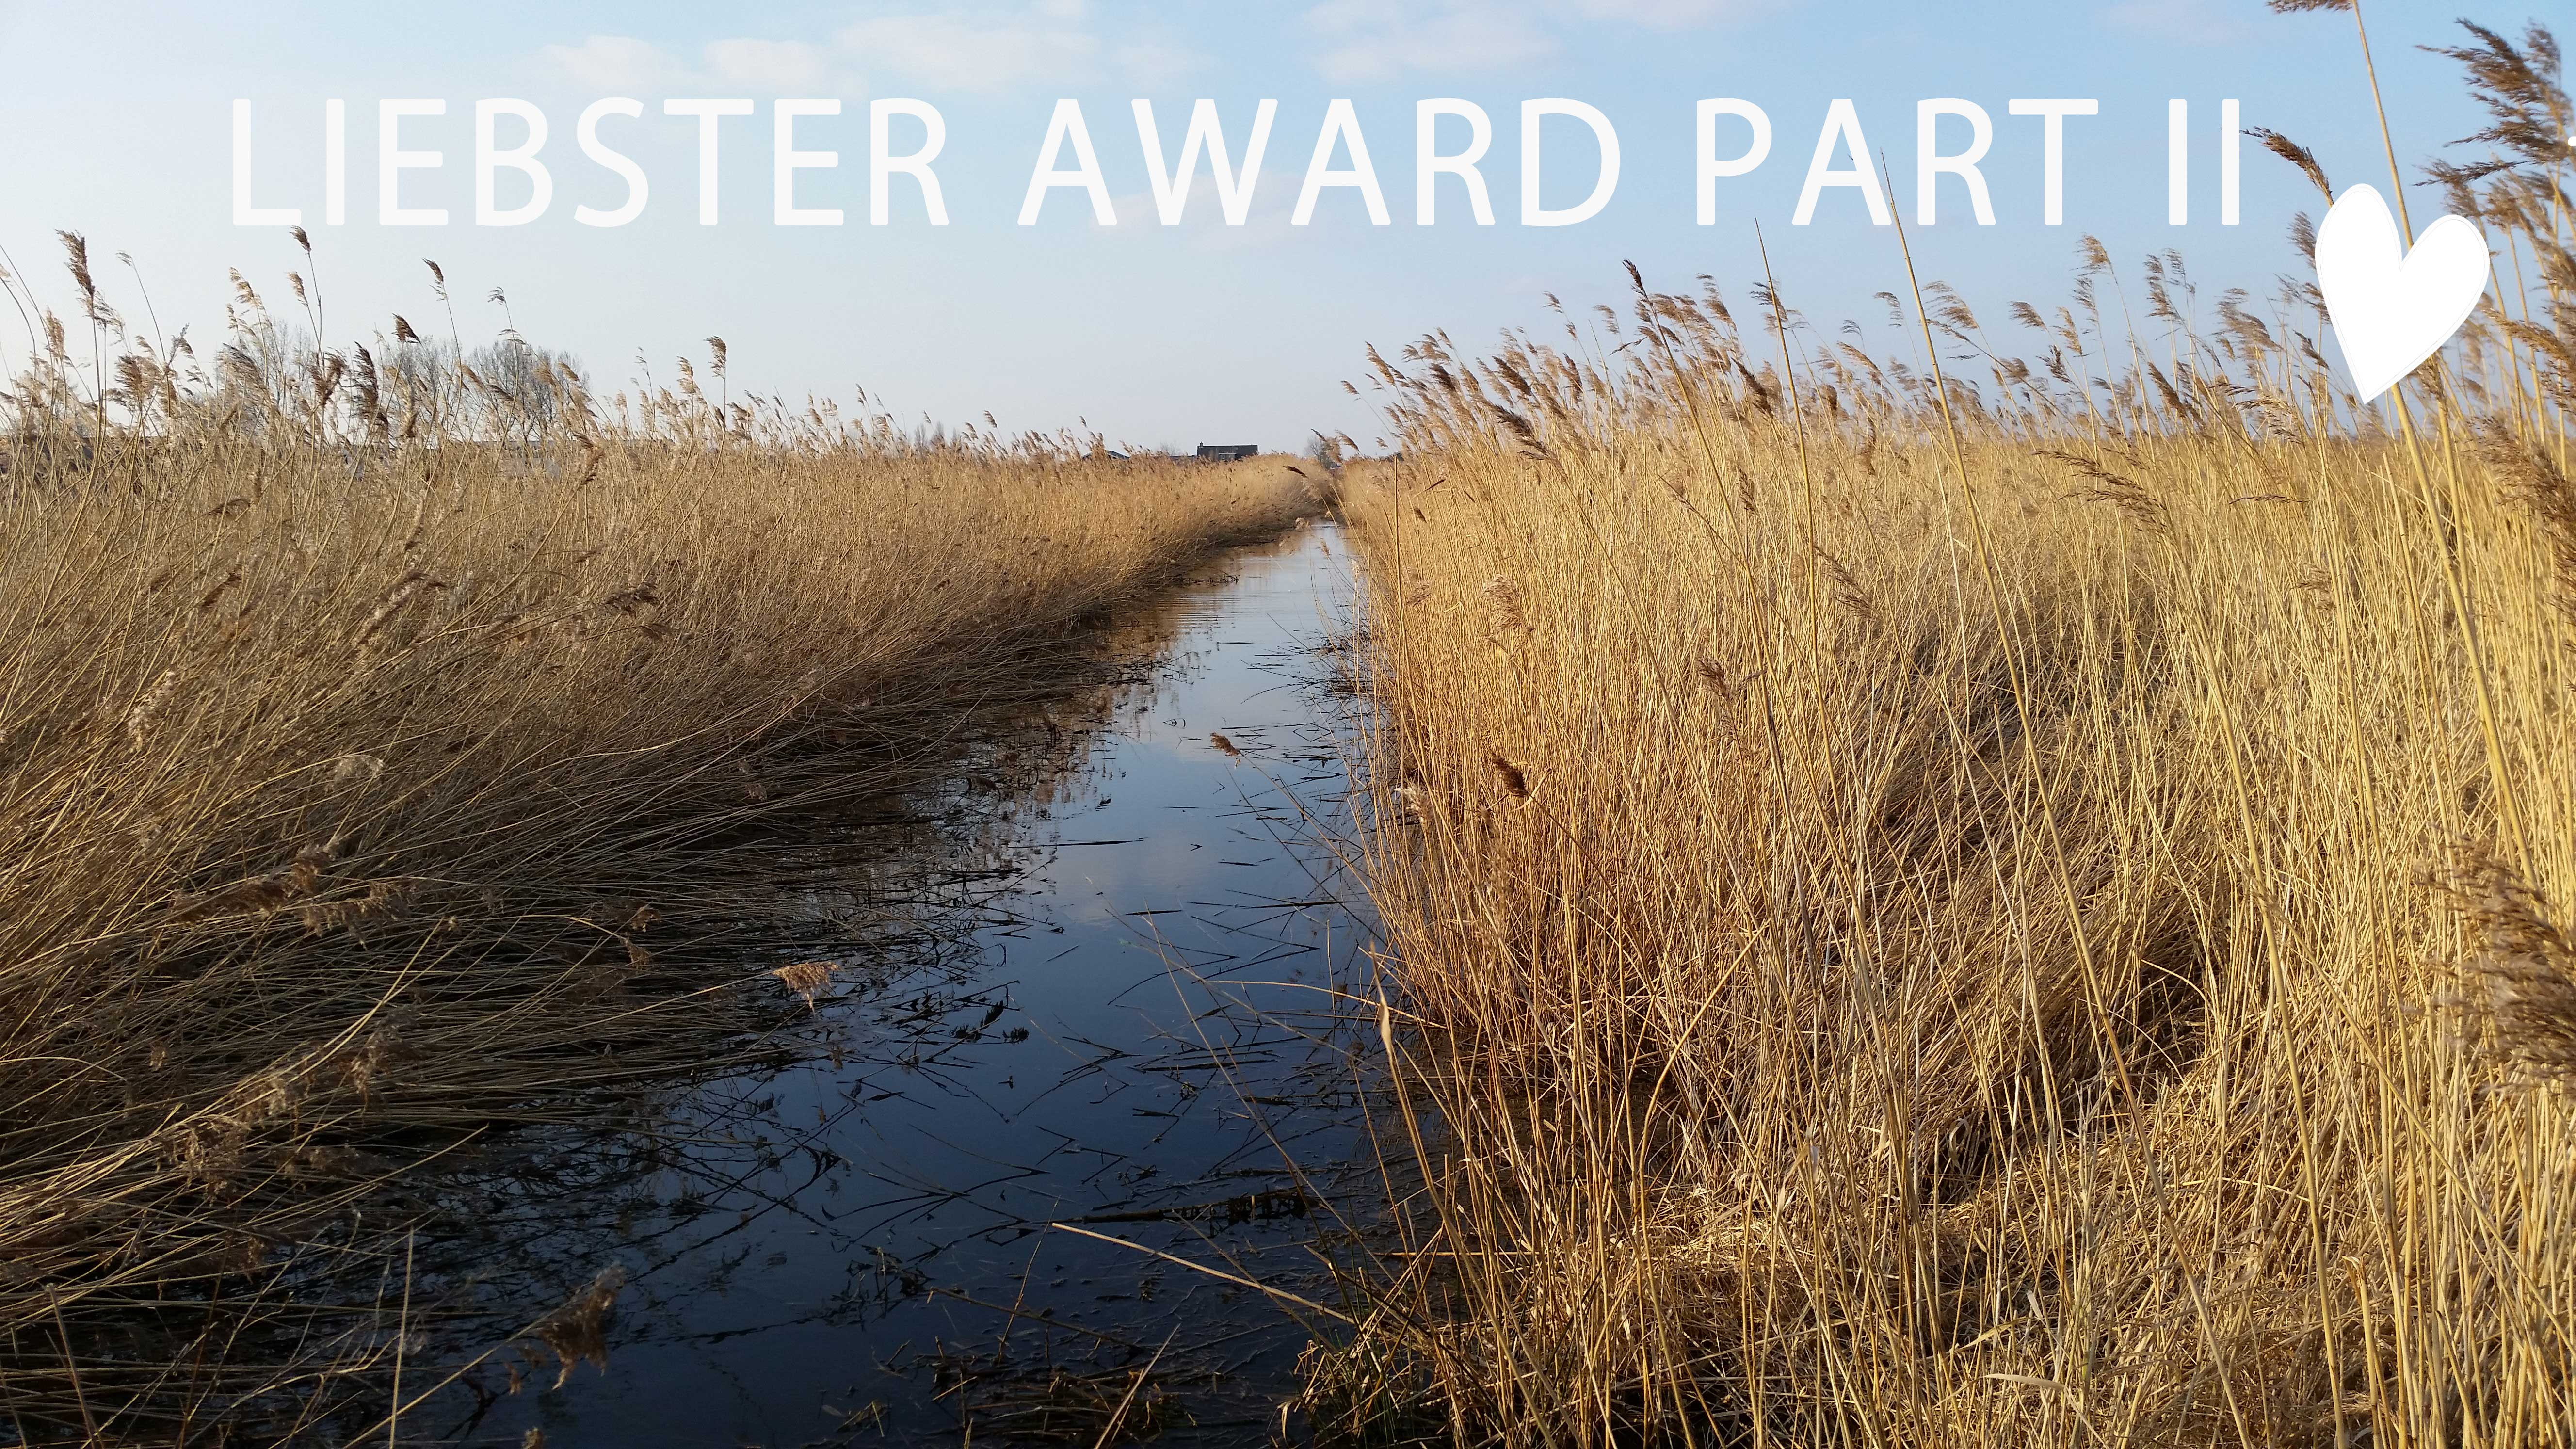 liebster award header